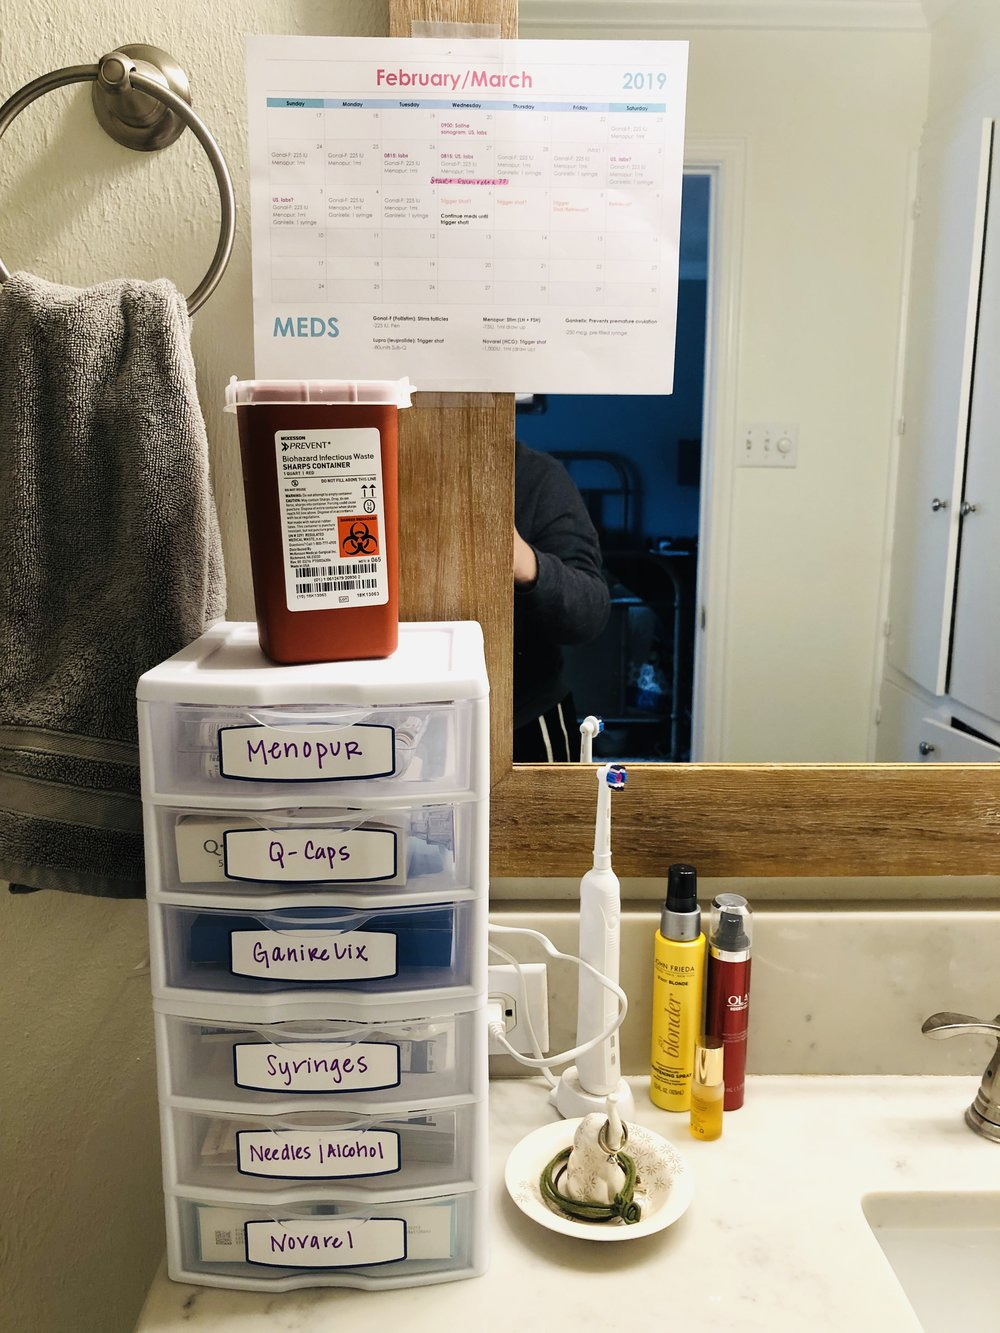 I don't have the biggest Master bath, so I went up with my organization instead of out! Some of the medications require refrigeration, which drives me nuts because I want everything in one place. Oh well. :)